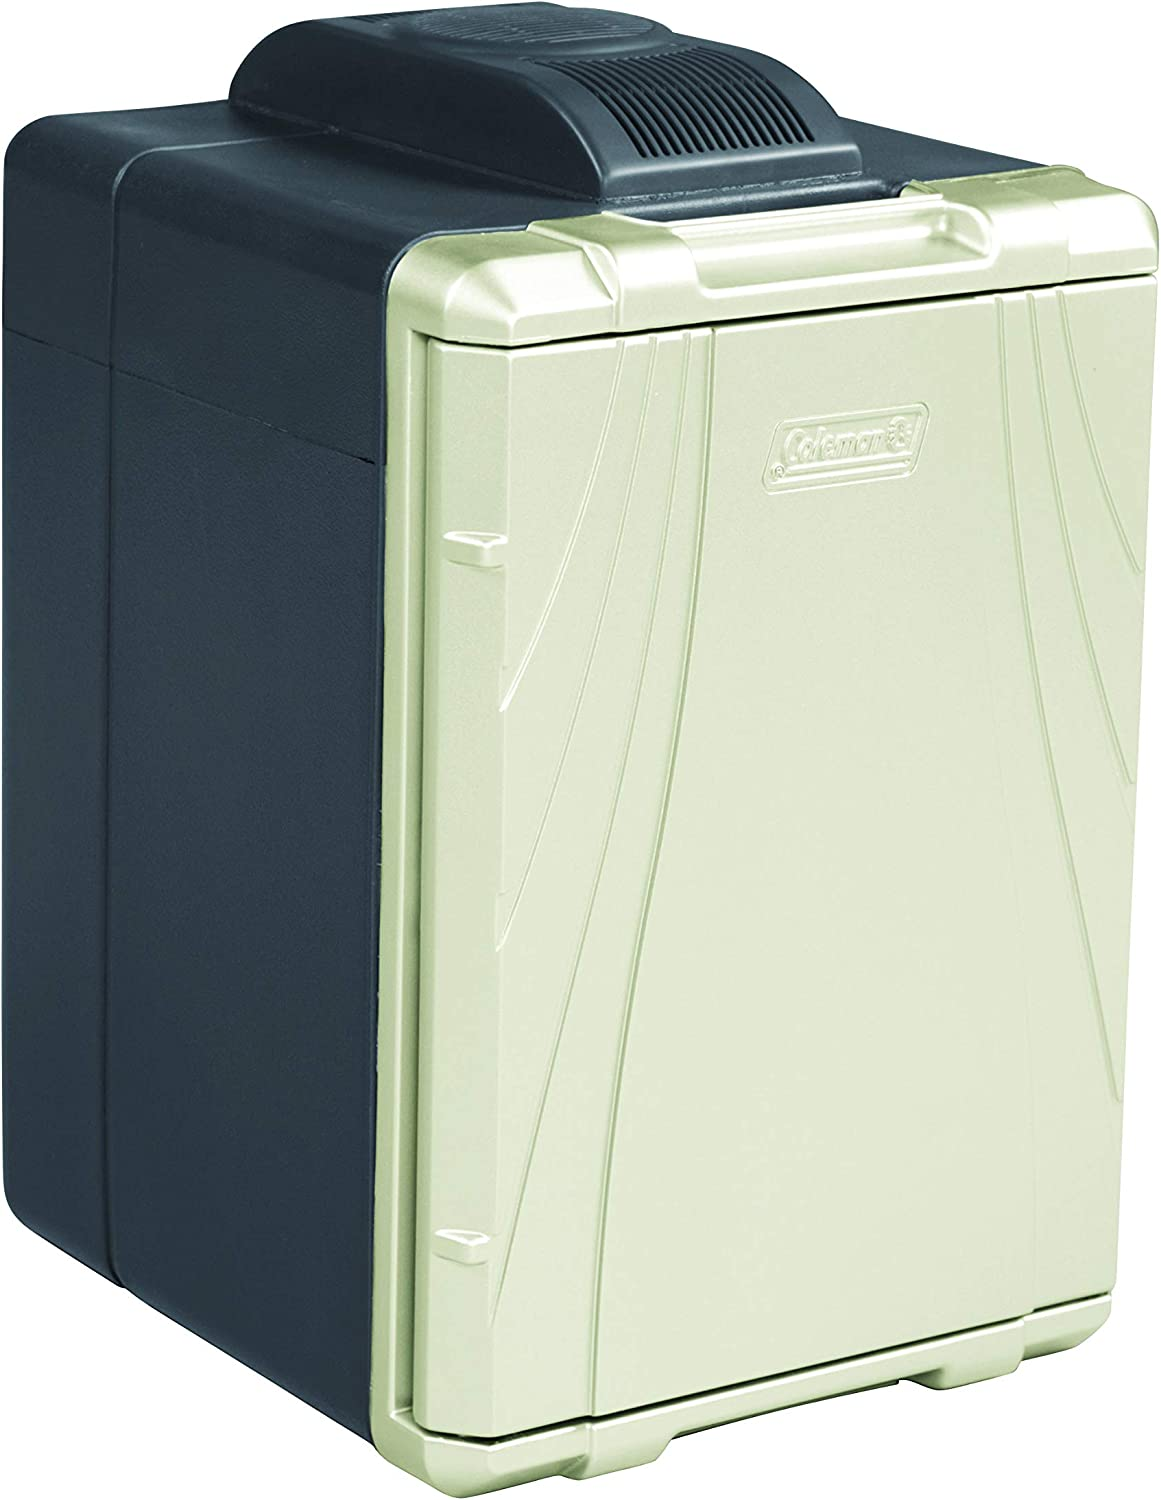 Top 10 Best Coleman Coolers for Camping Reviews in 2020 4